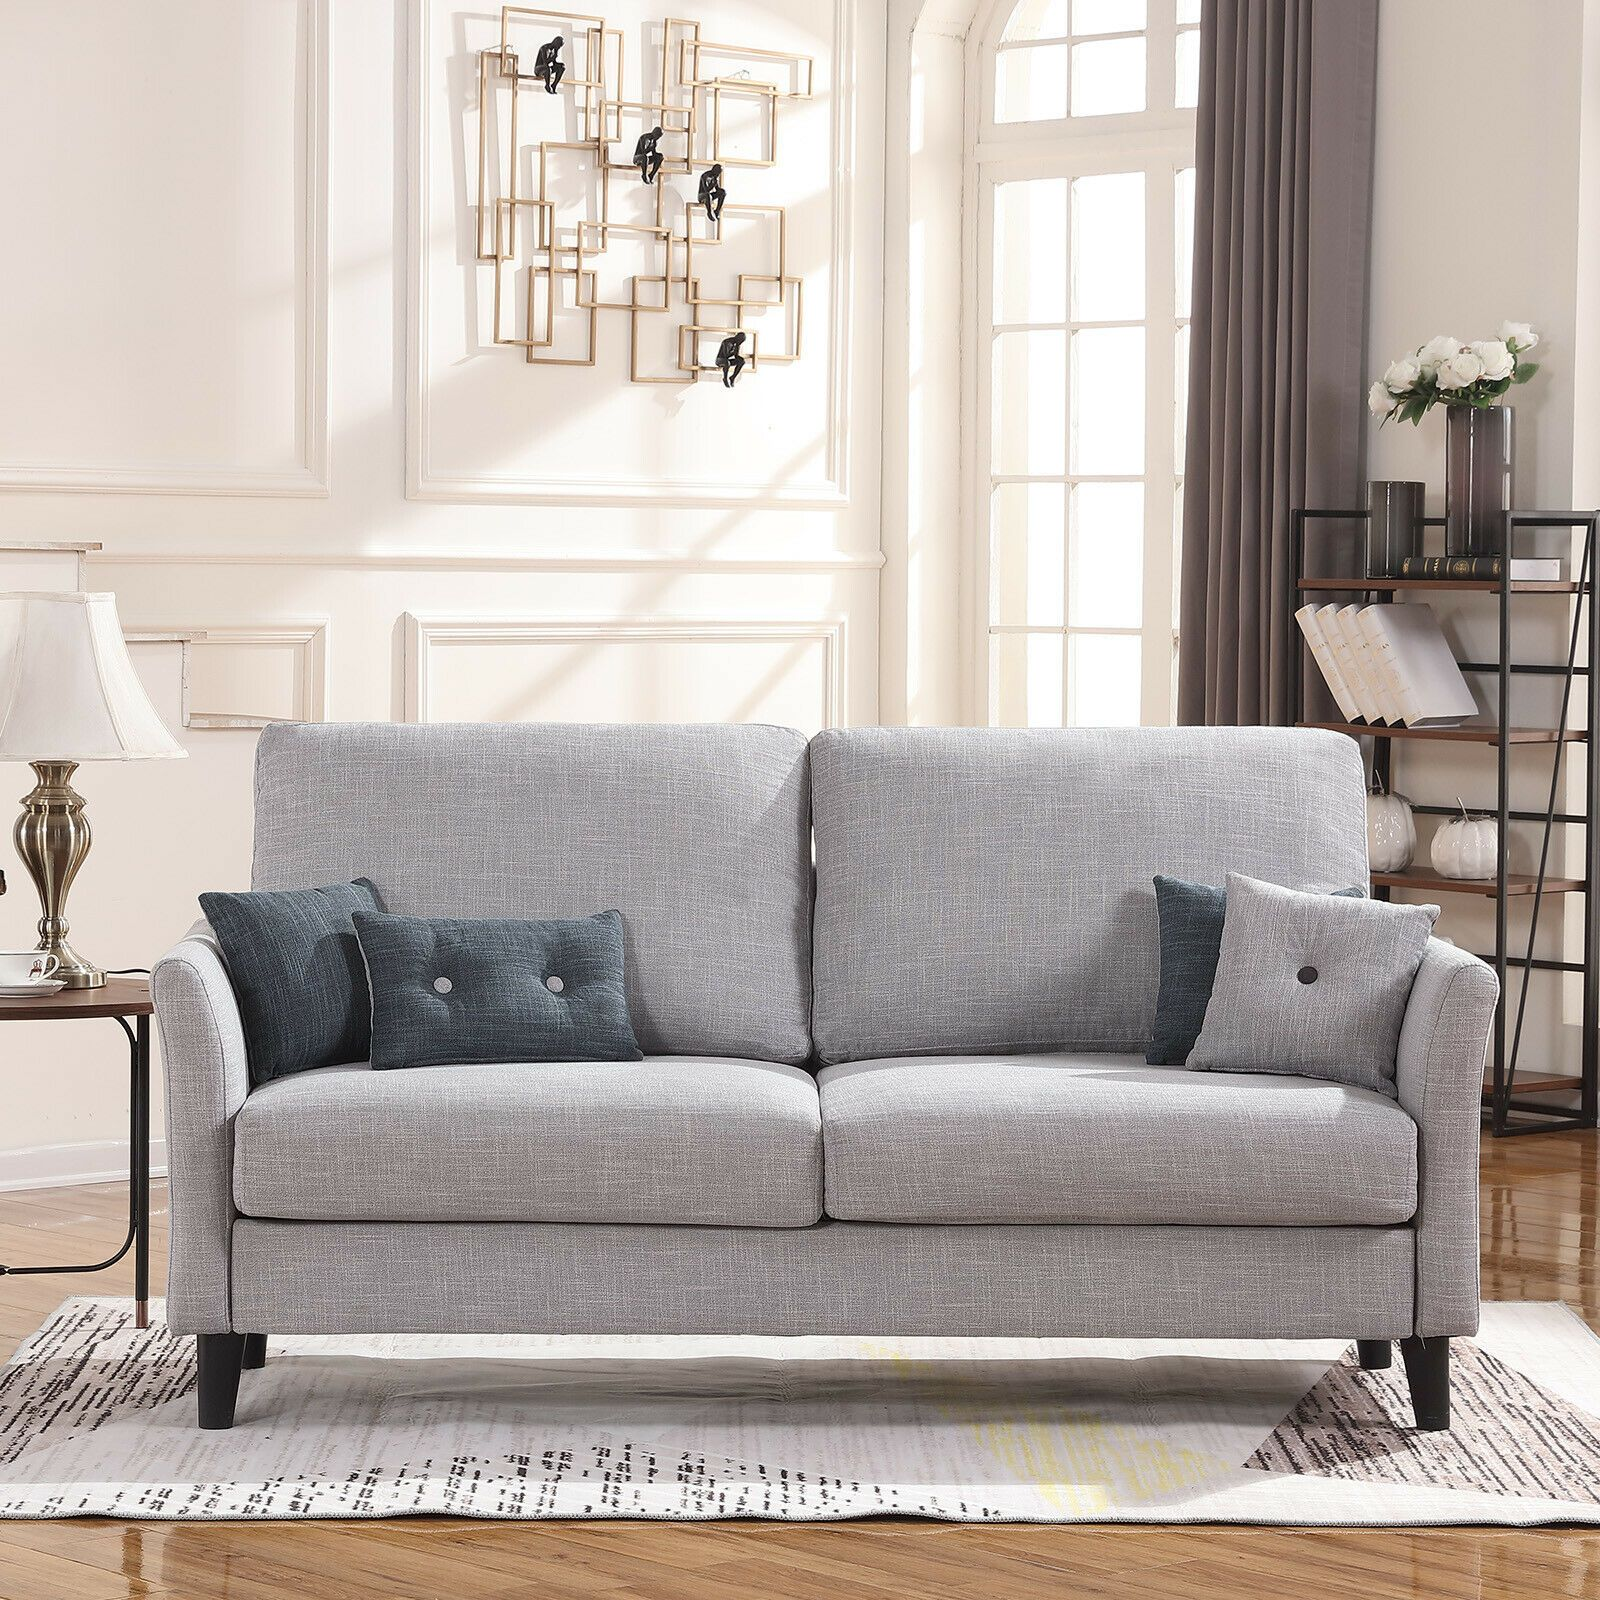 Modern Upholstered Sofa Fabric Contemporary Couch In Living Room Light Gray Sofas Living Roo Grey Sofa Living Room Grey Carpet Living Room Yellow Living Room